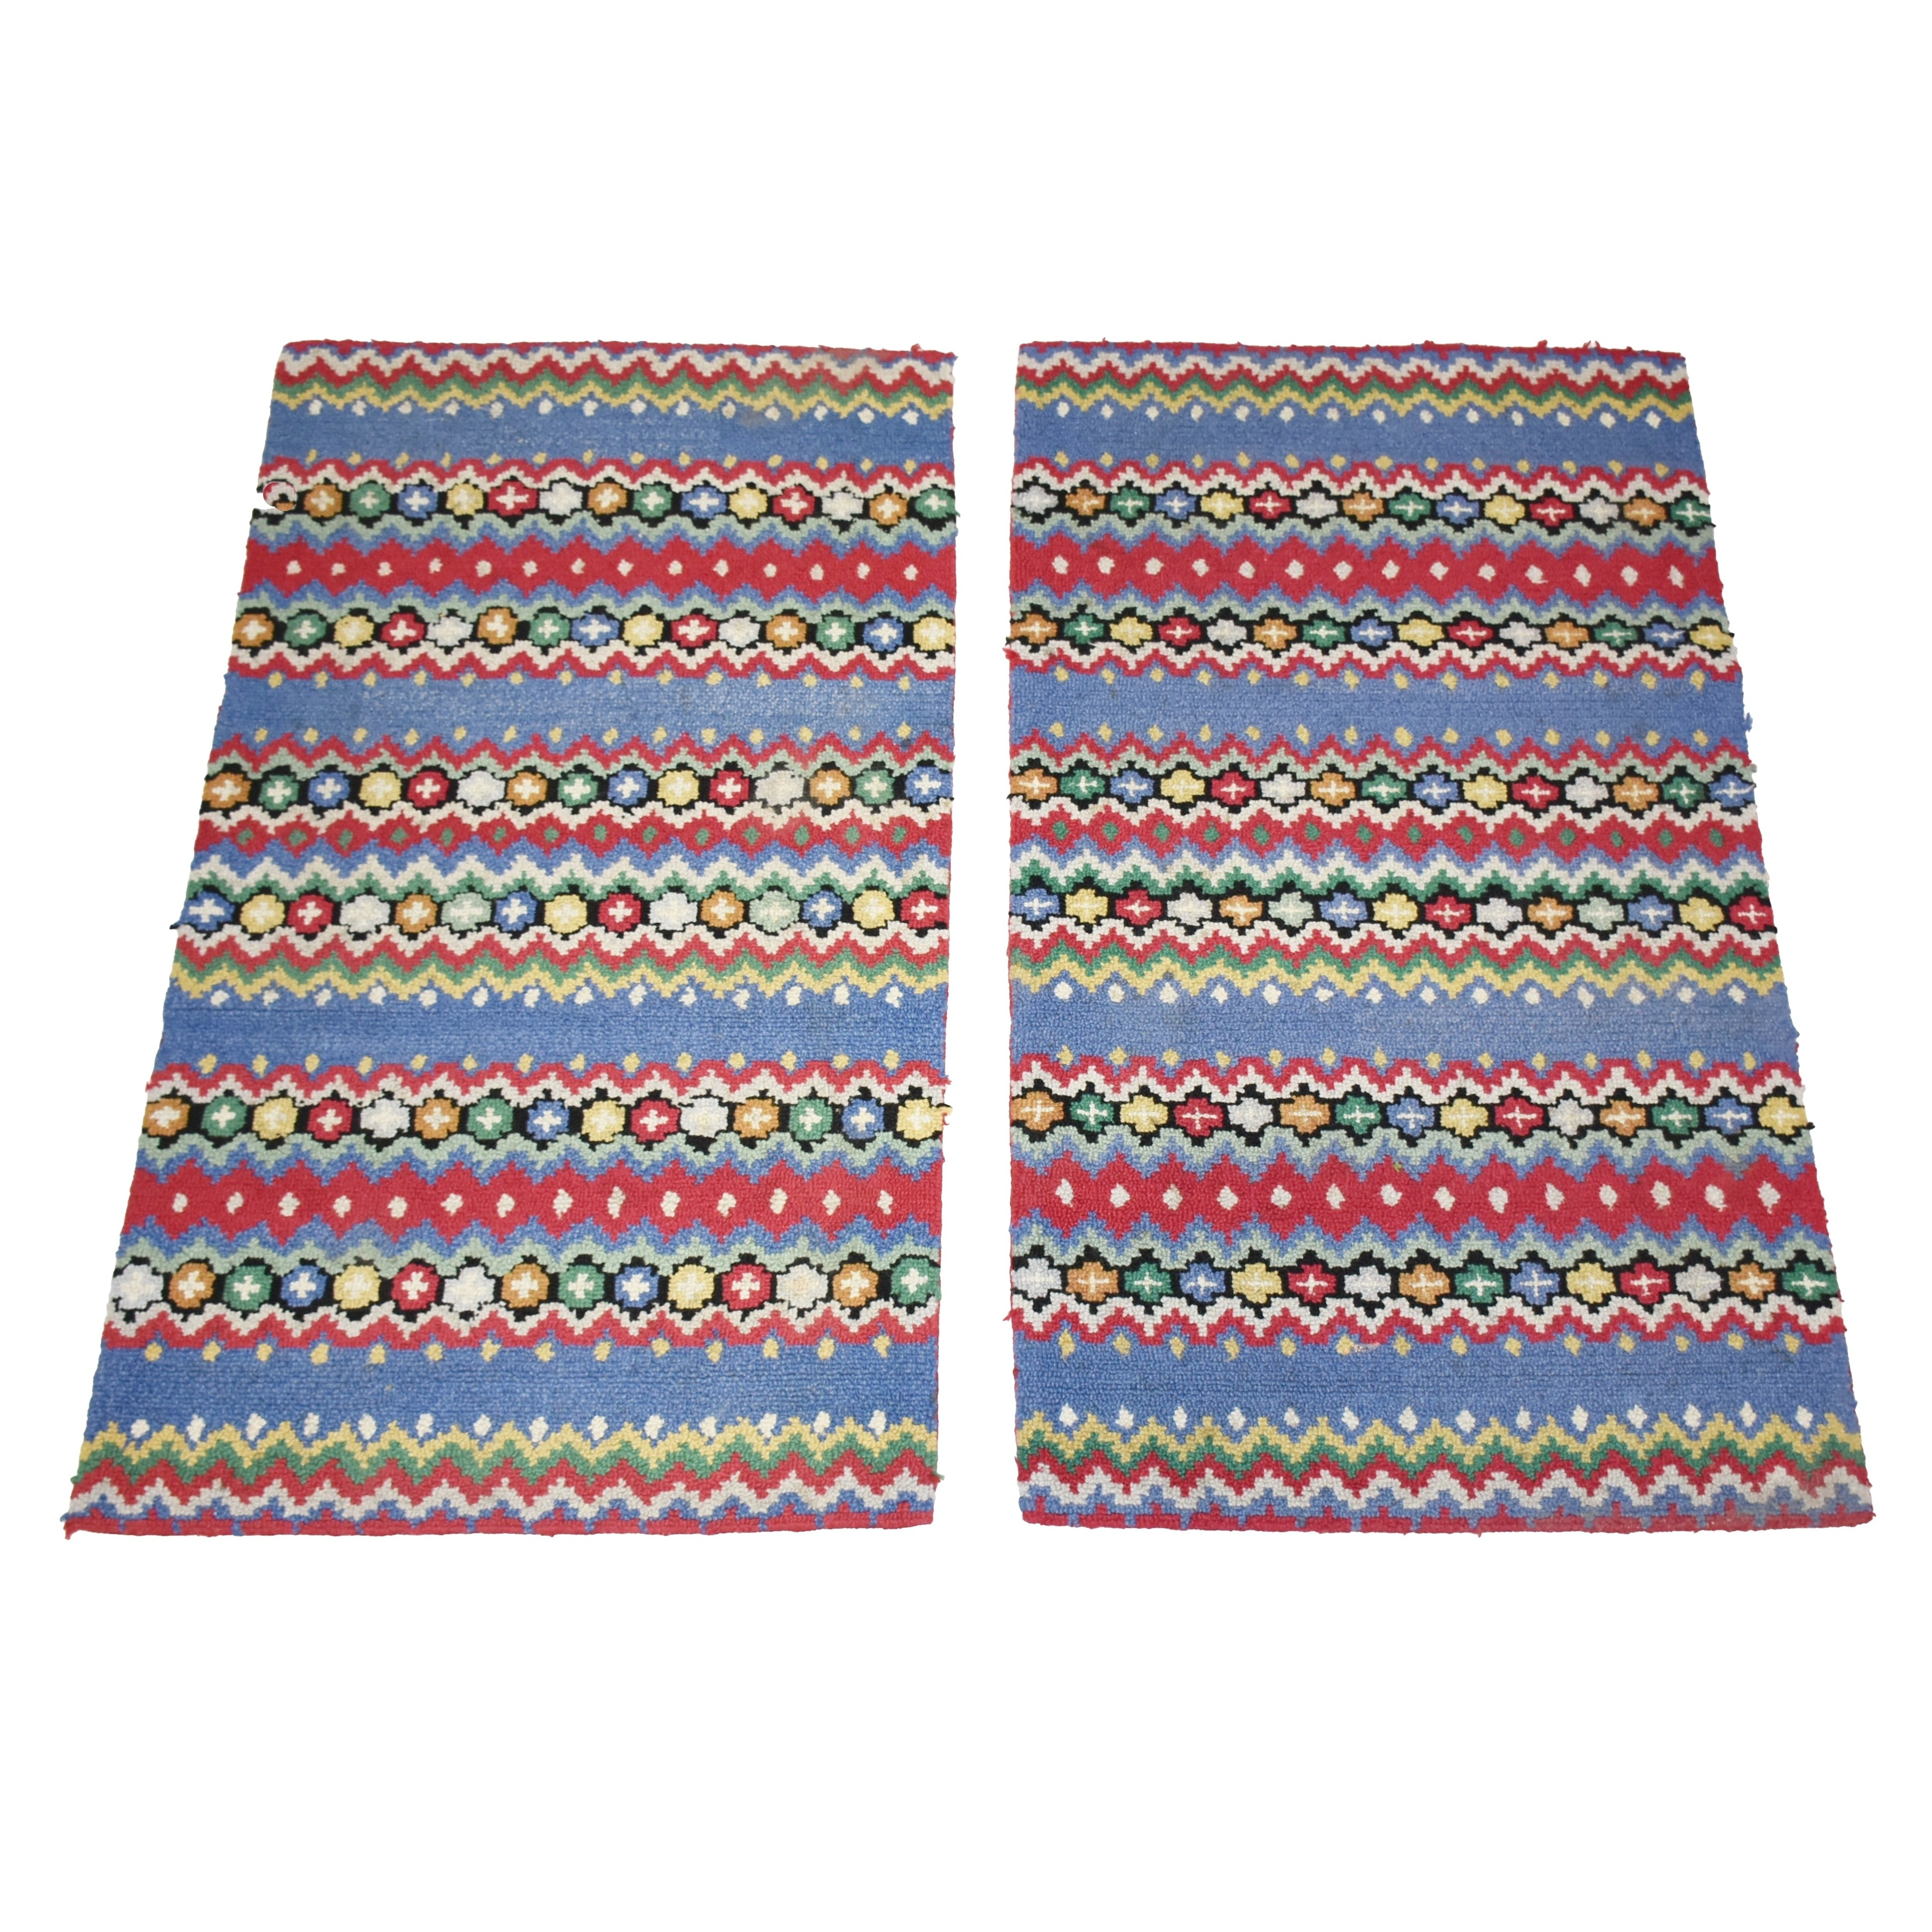 Two Hand Hooked Wool Rugs